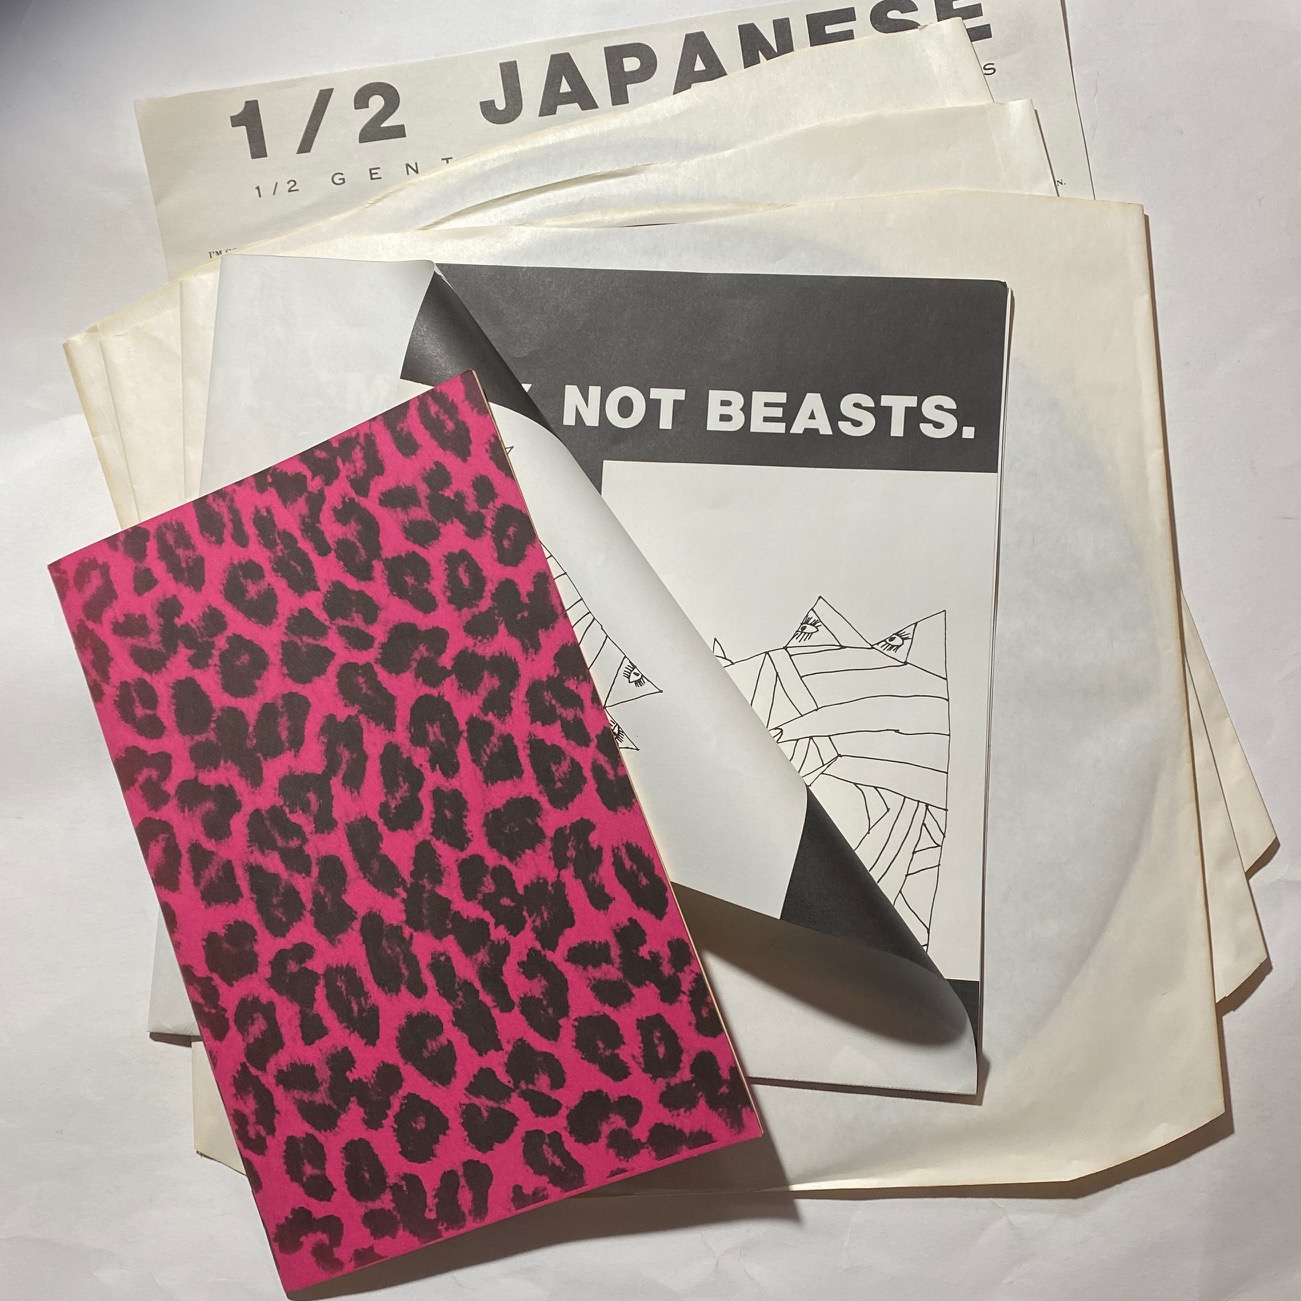 1/2 Japanese 1/2 Gentlemen / Not Beasts